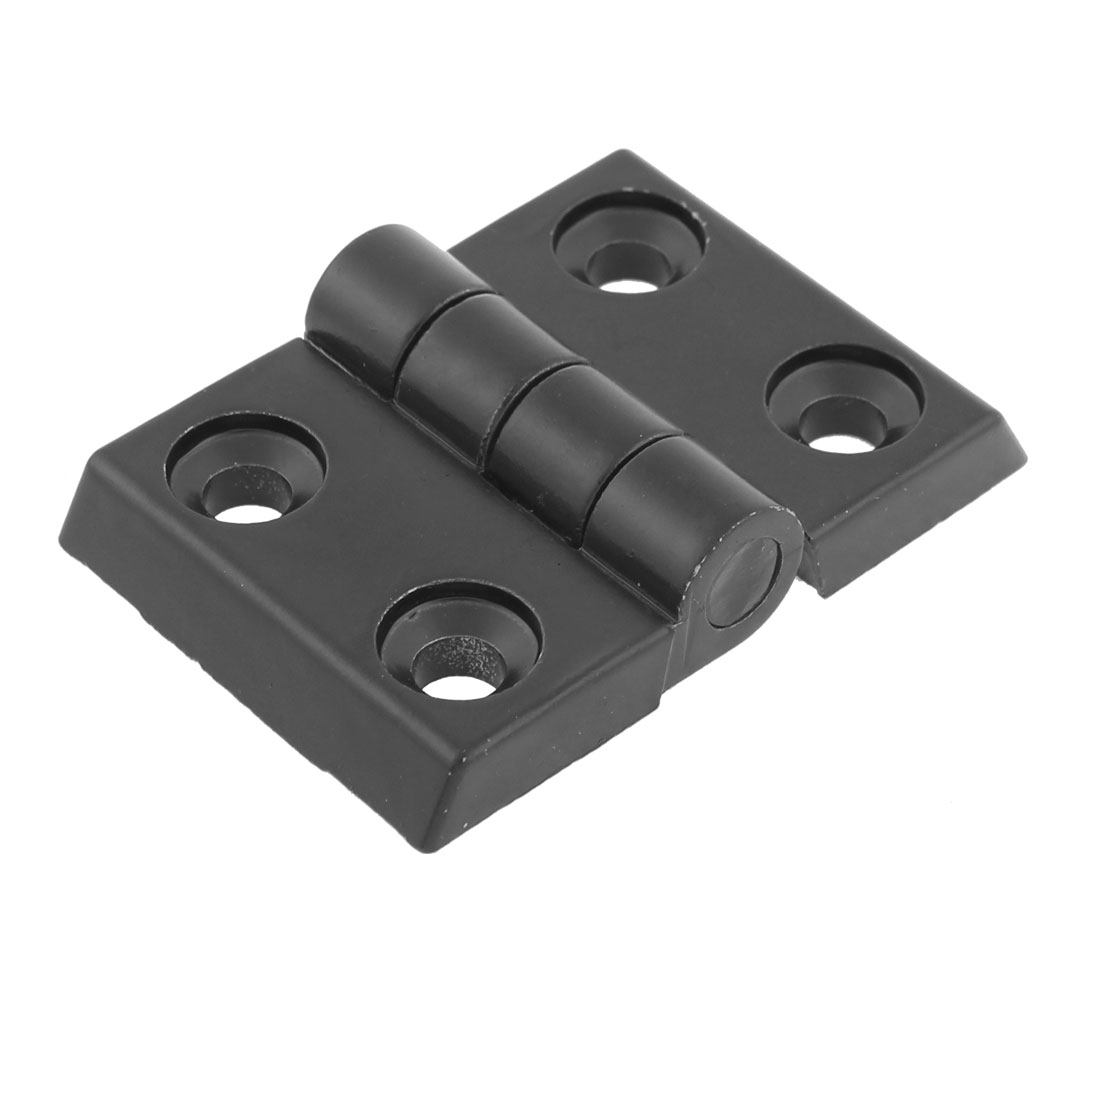 45mmx40mm 2 Leaves Aluminum Door Bearing Butt Hinge Hardware Black